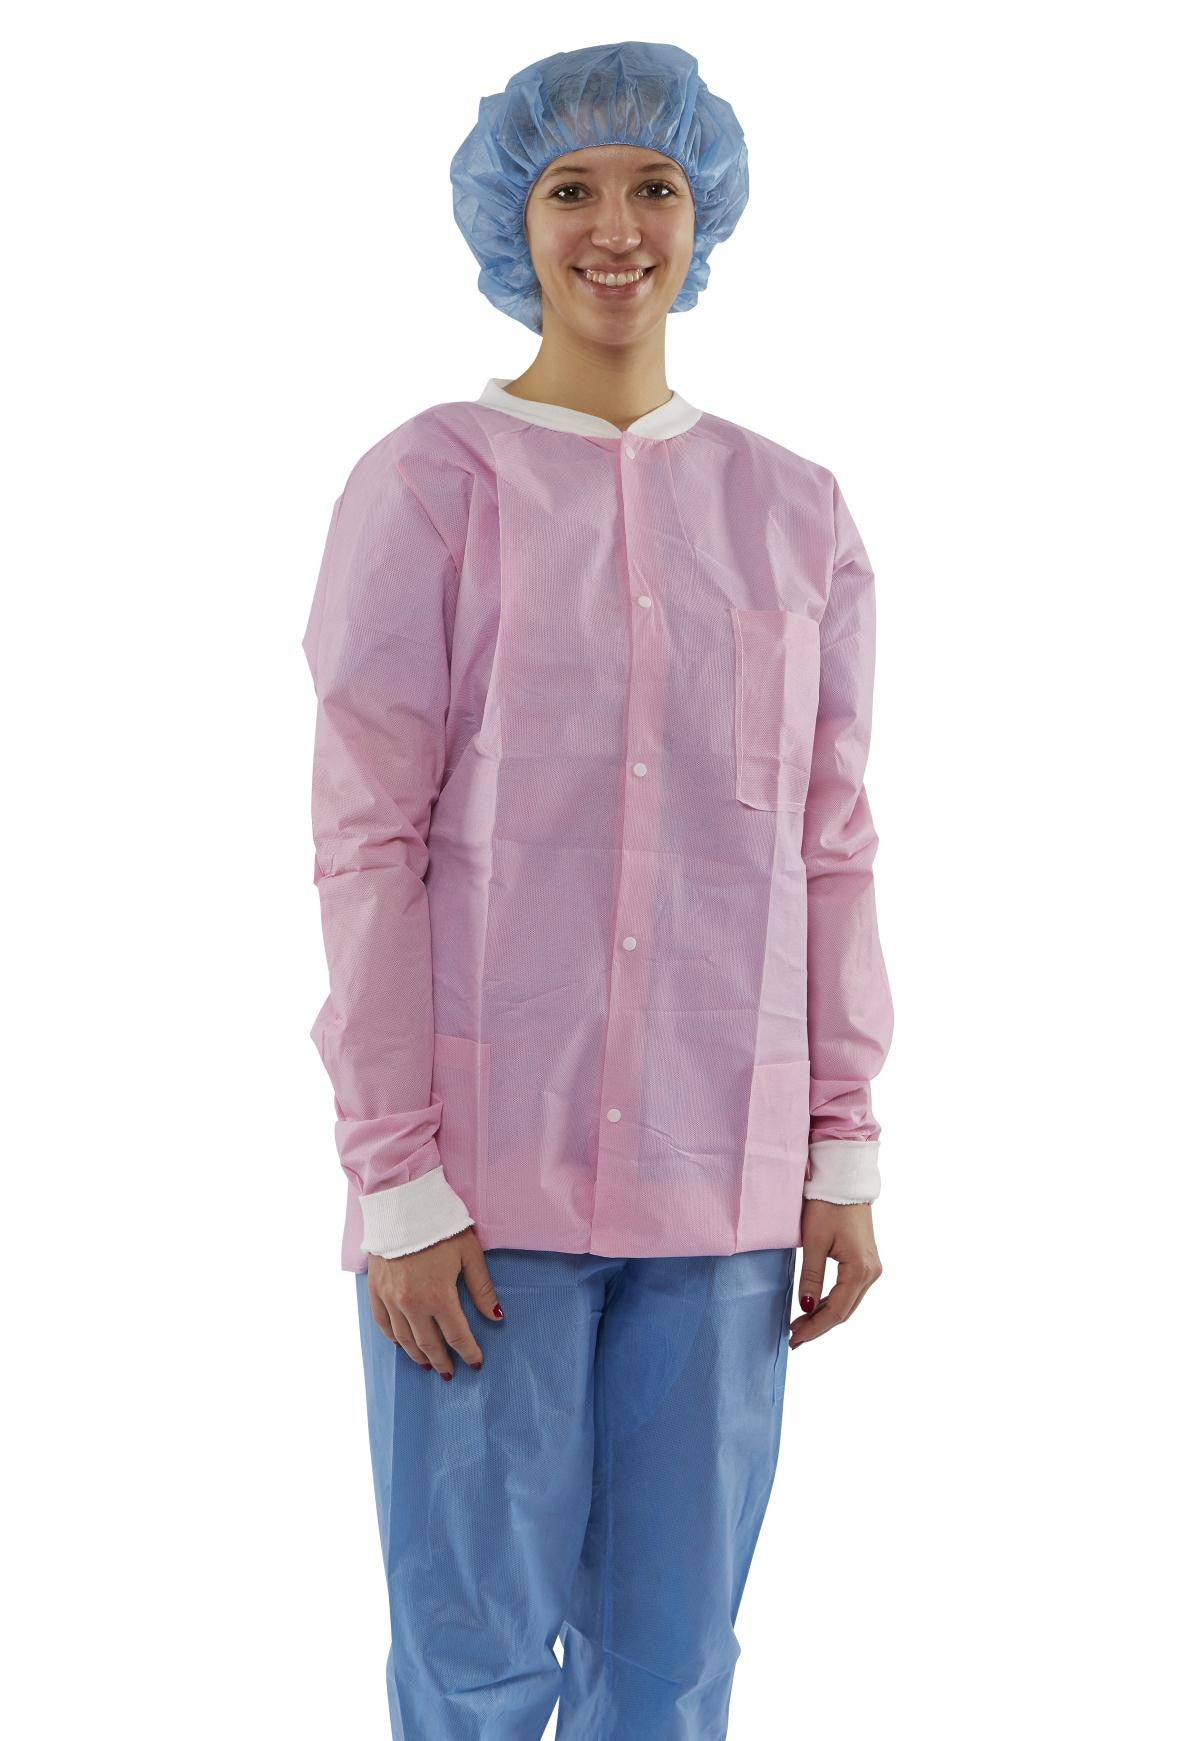 Antistatic Classic Lab Jackets Case Of 30 Bh Medwear